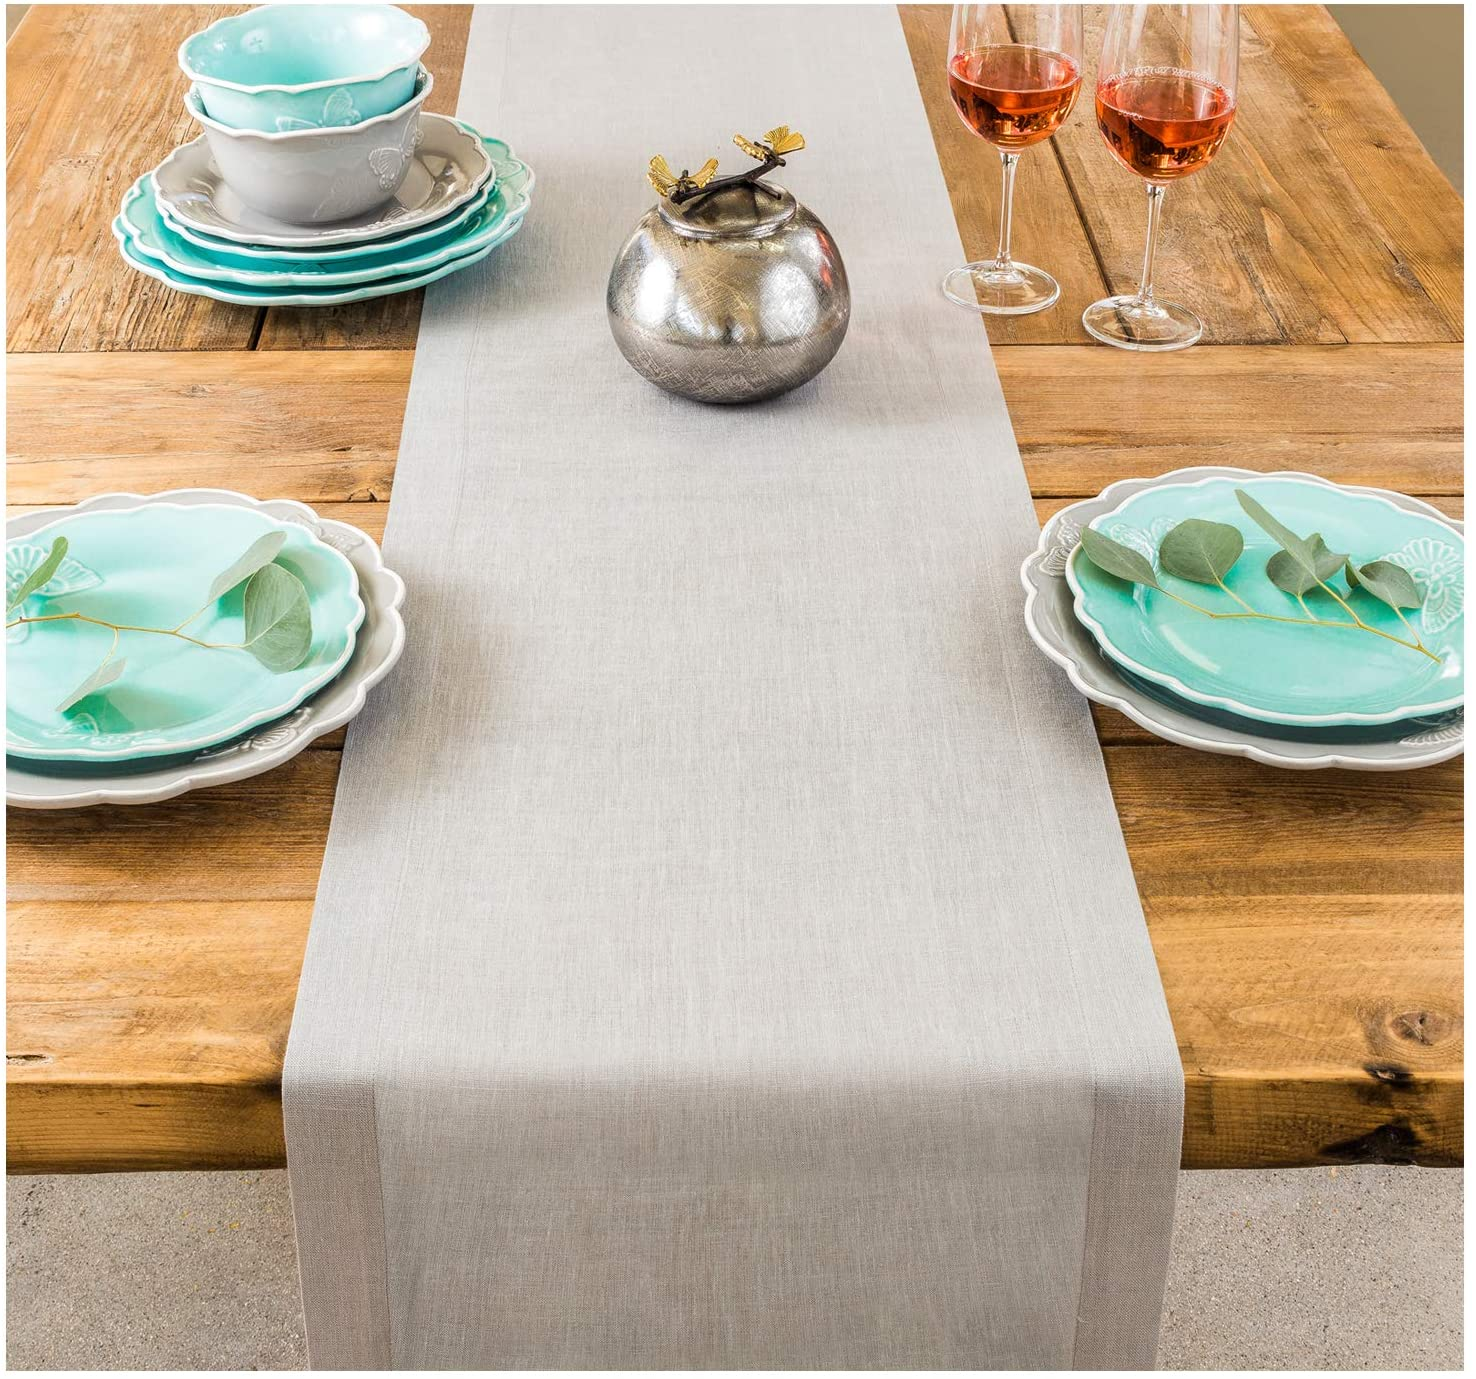 PROVIMO HOME Hemmed Table Runners (14 x 90 Inch, Cool Grey)